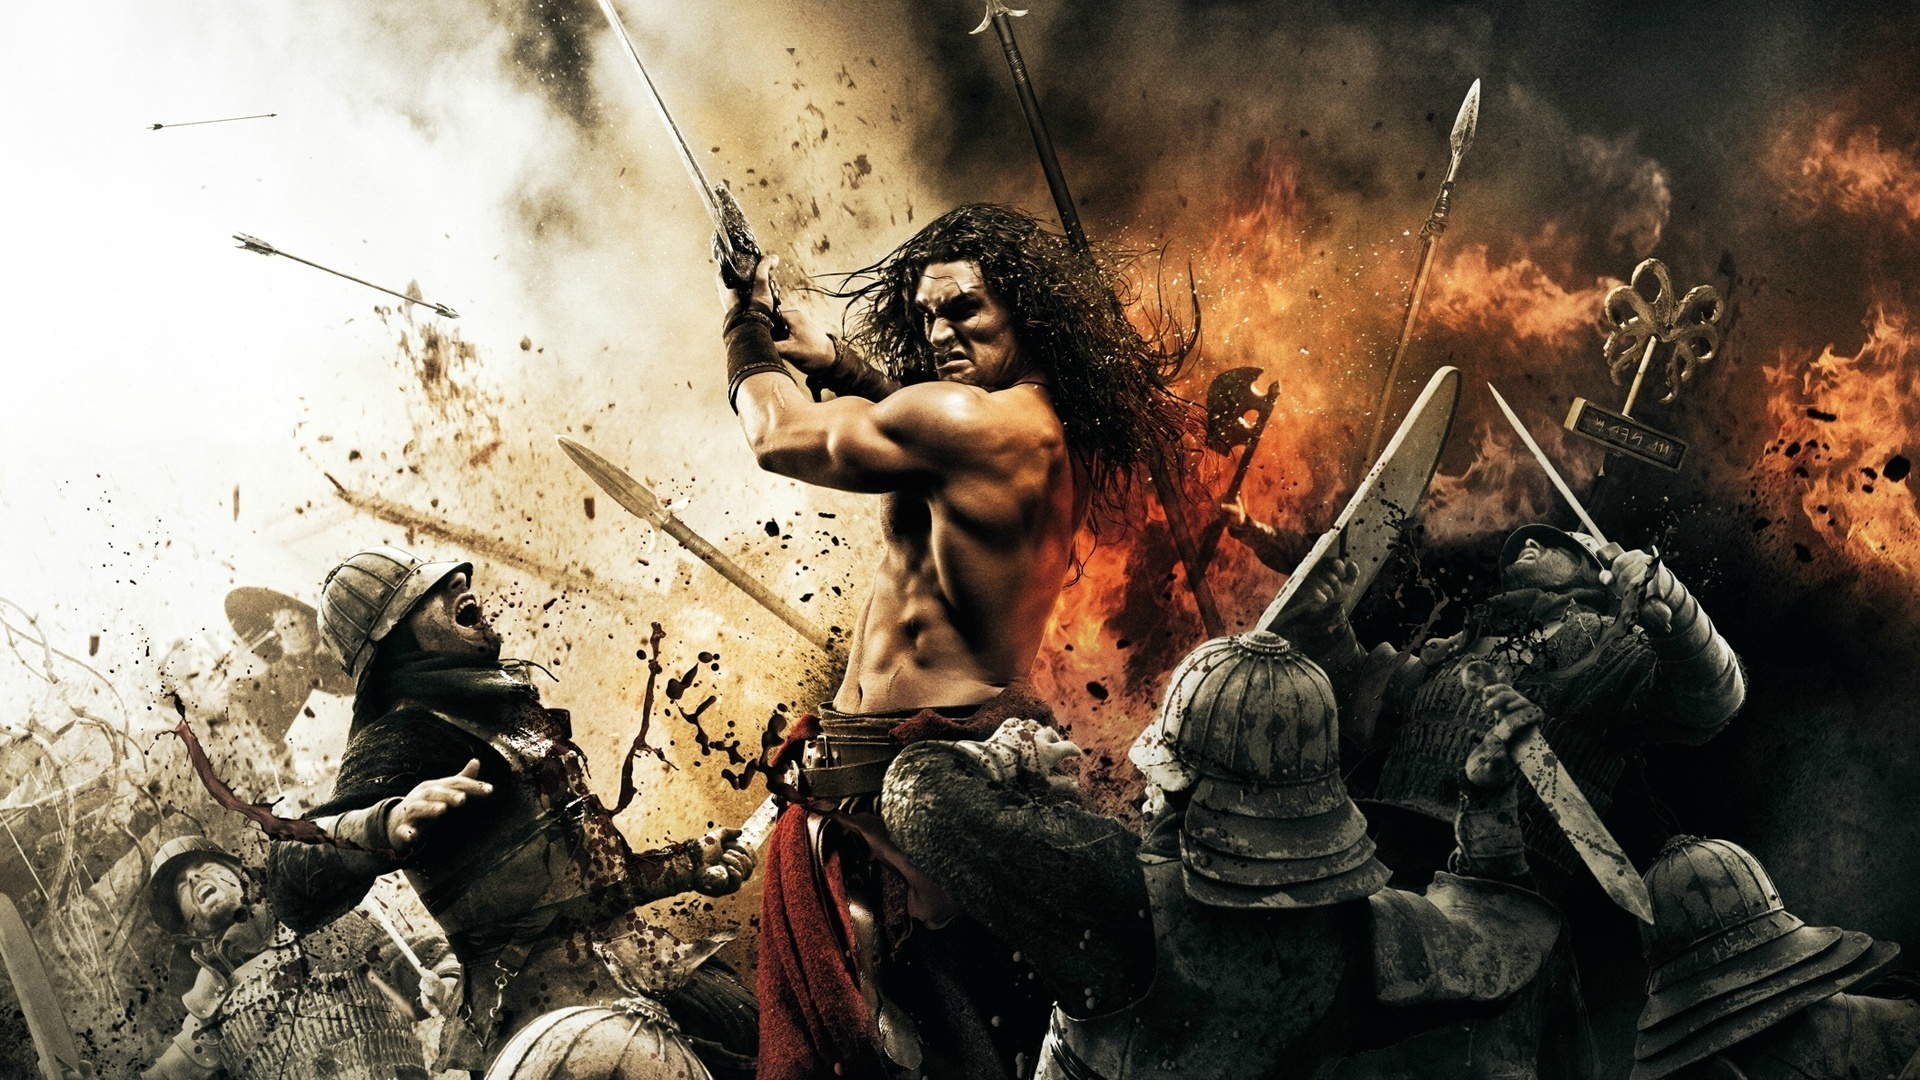 King Of Kings - 2011 Conan The Barbarian Movie Poster , HD Wallpaper & Backgrounds